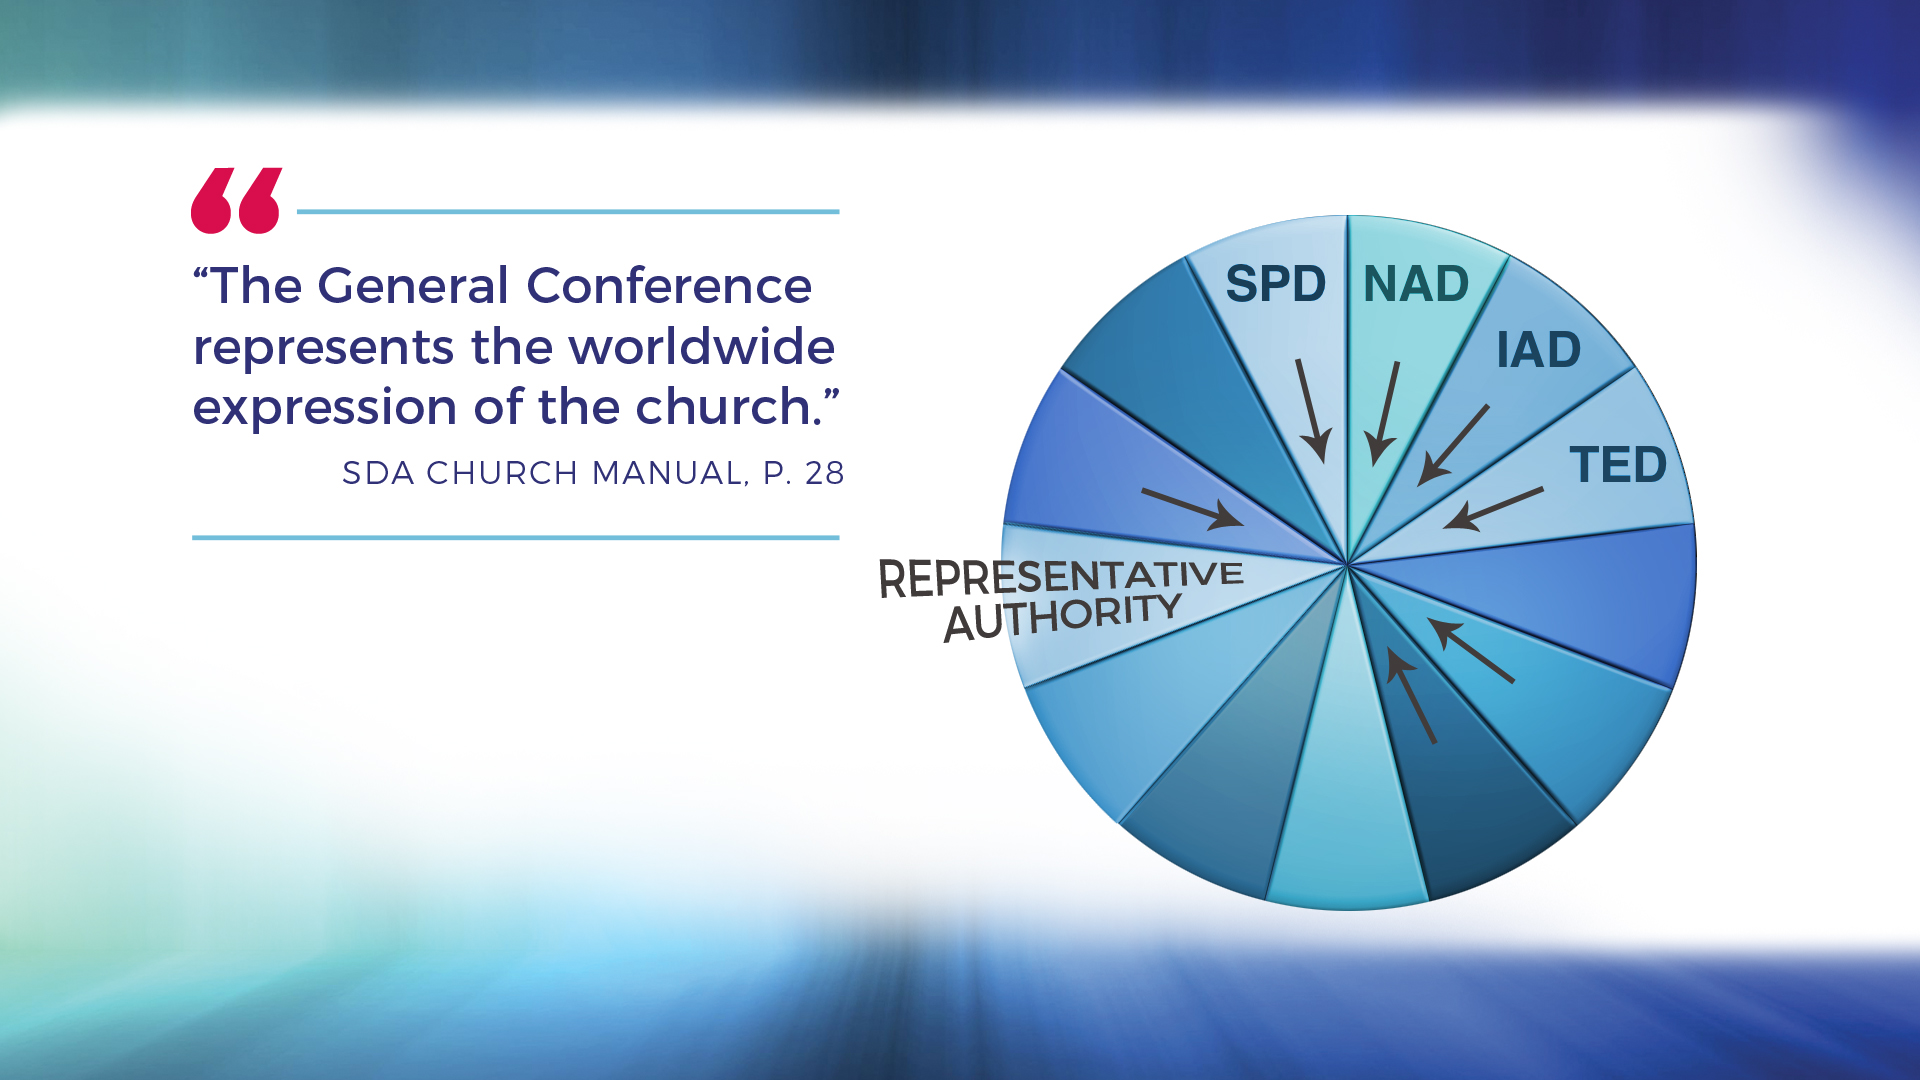 The General Conference represents the worldwide expression of the church